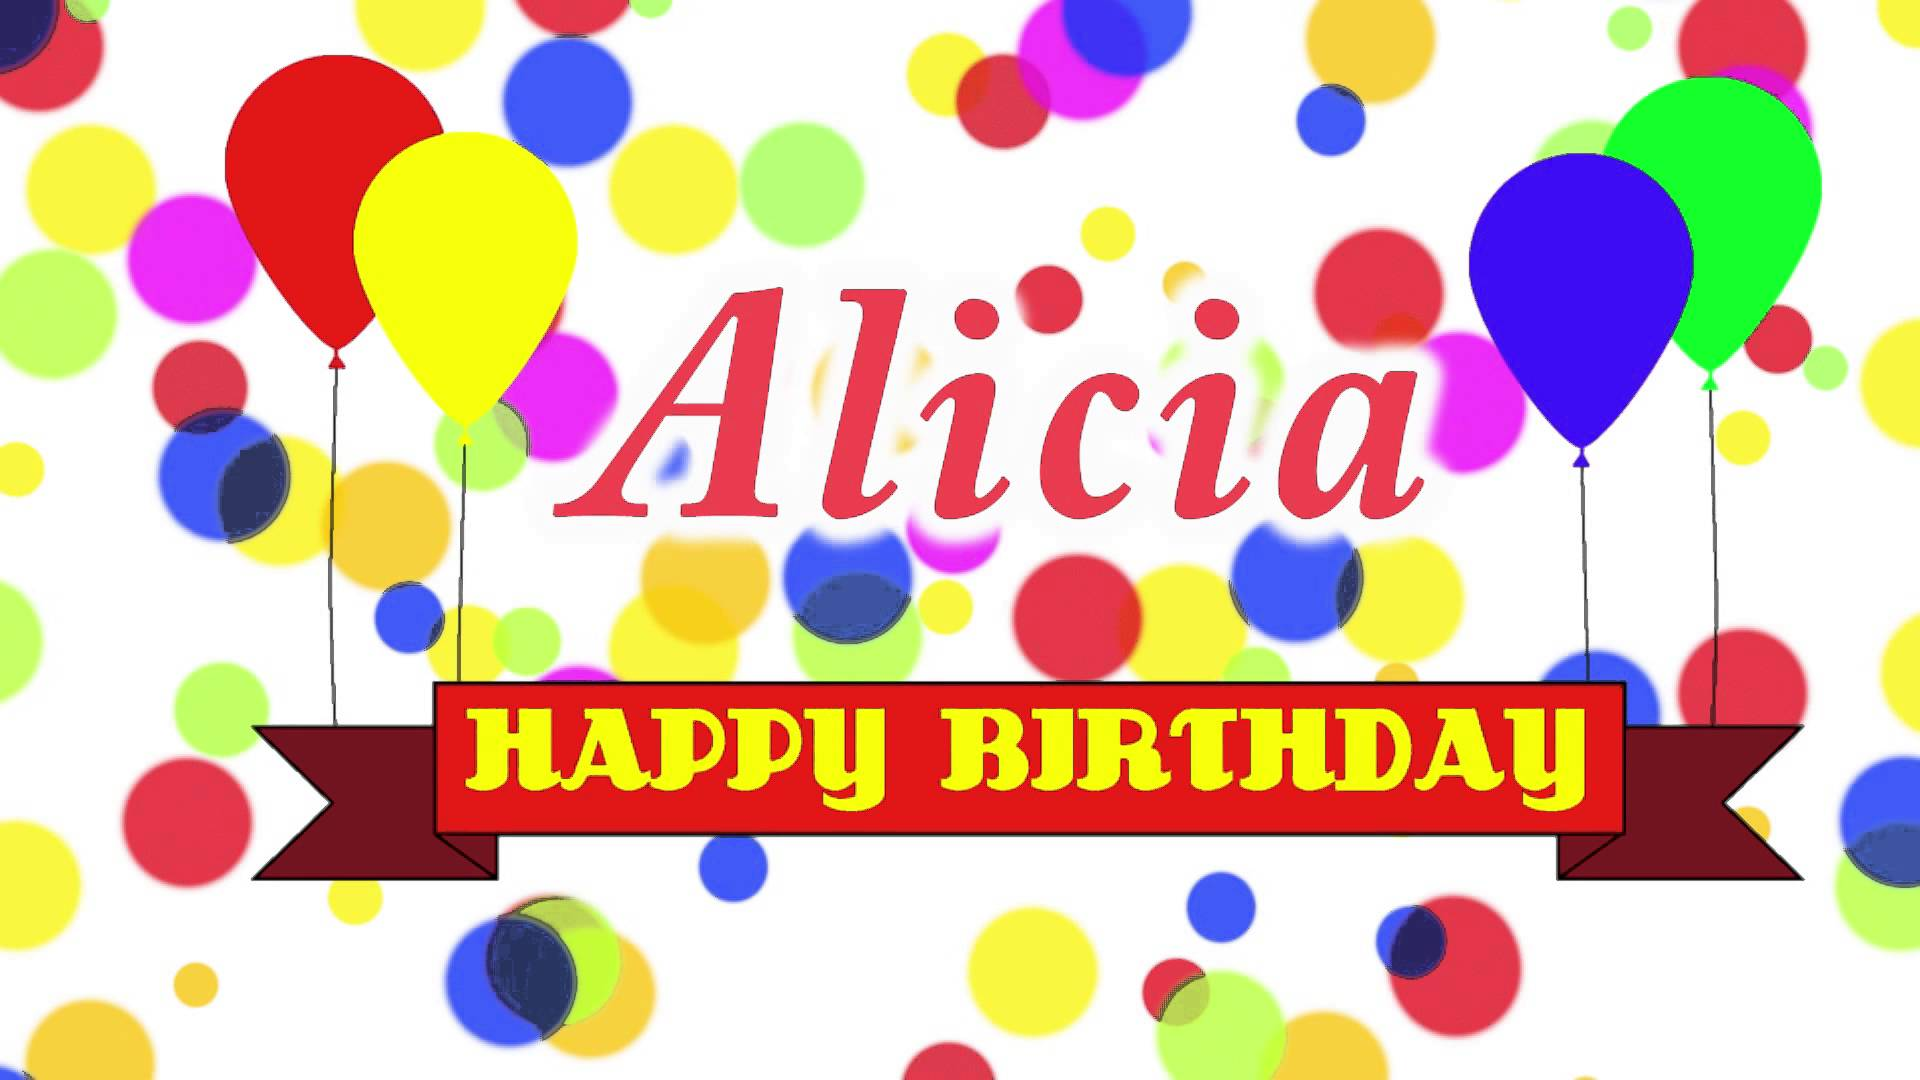 happy birthday alicia images ; maxresdefault